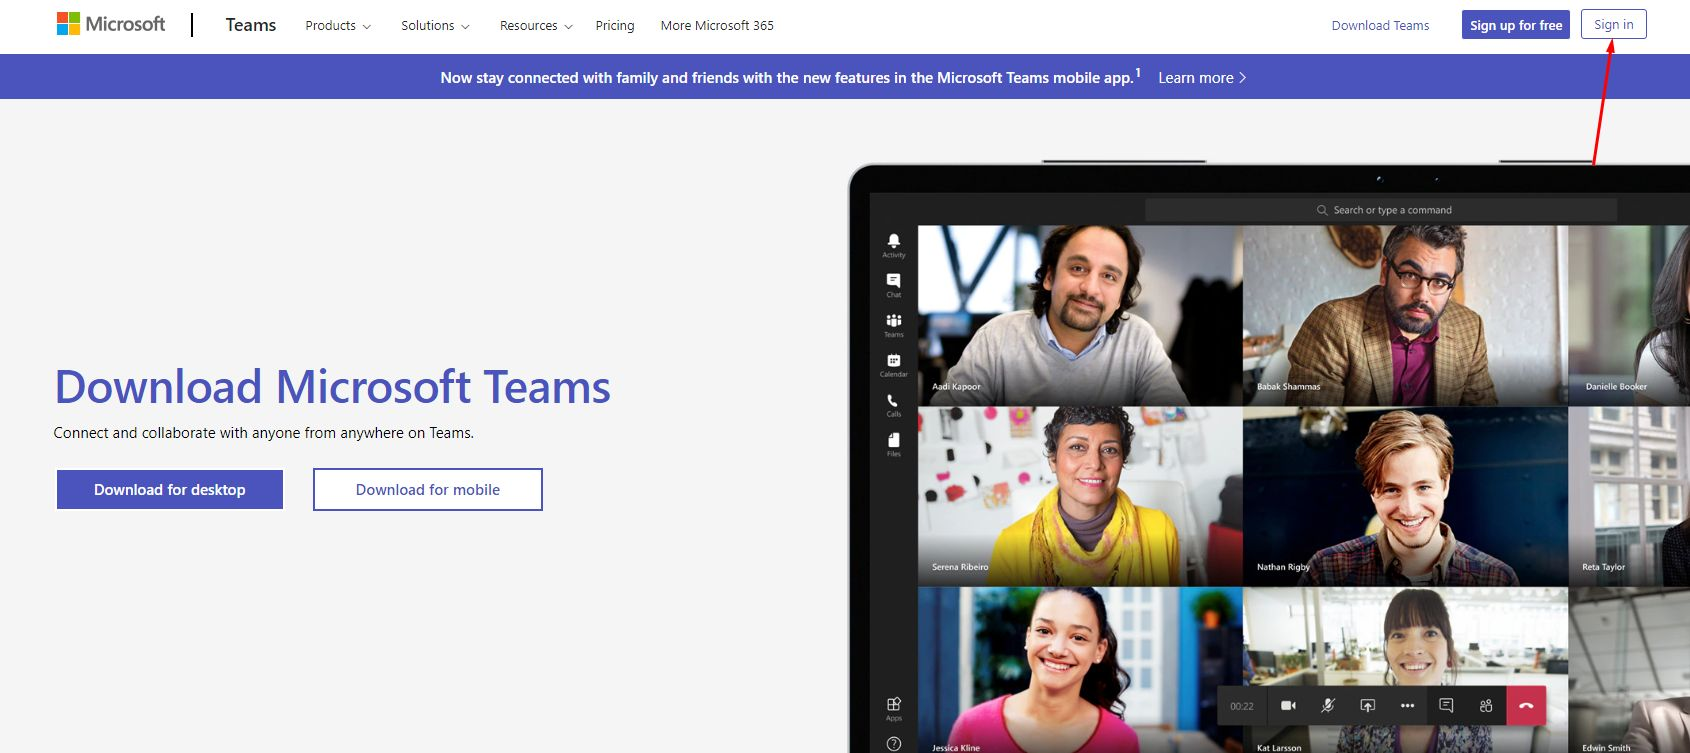 microsoft teams sign in button